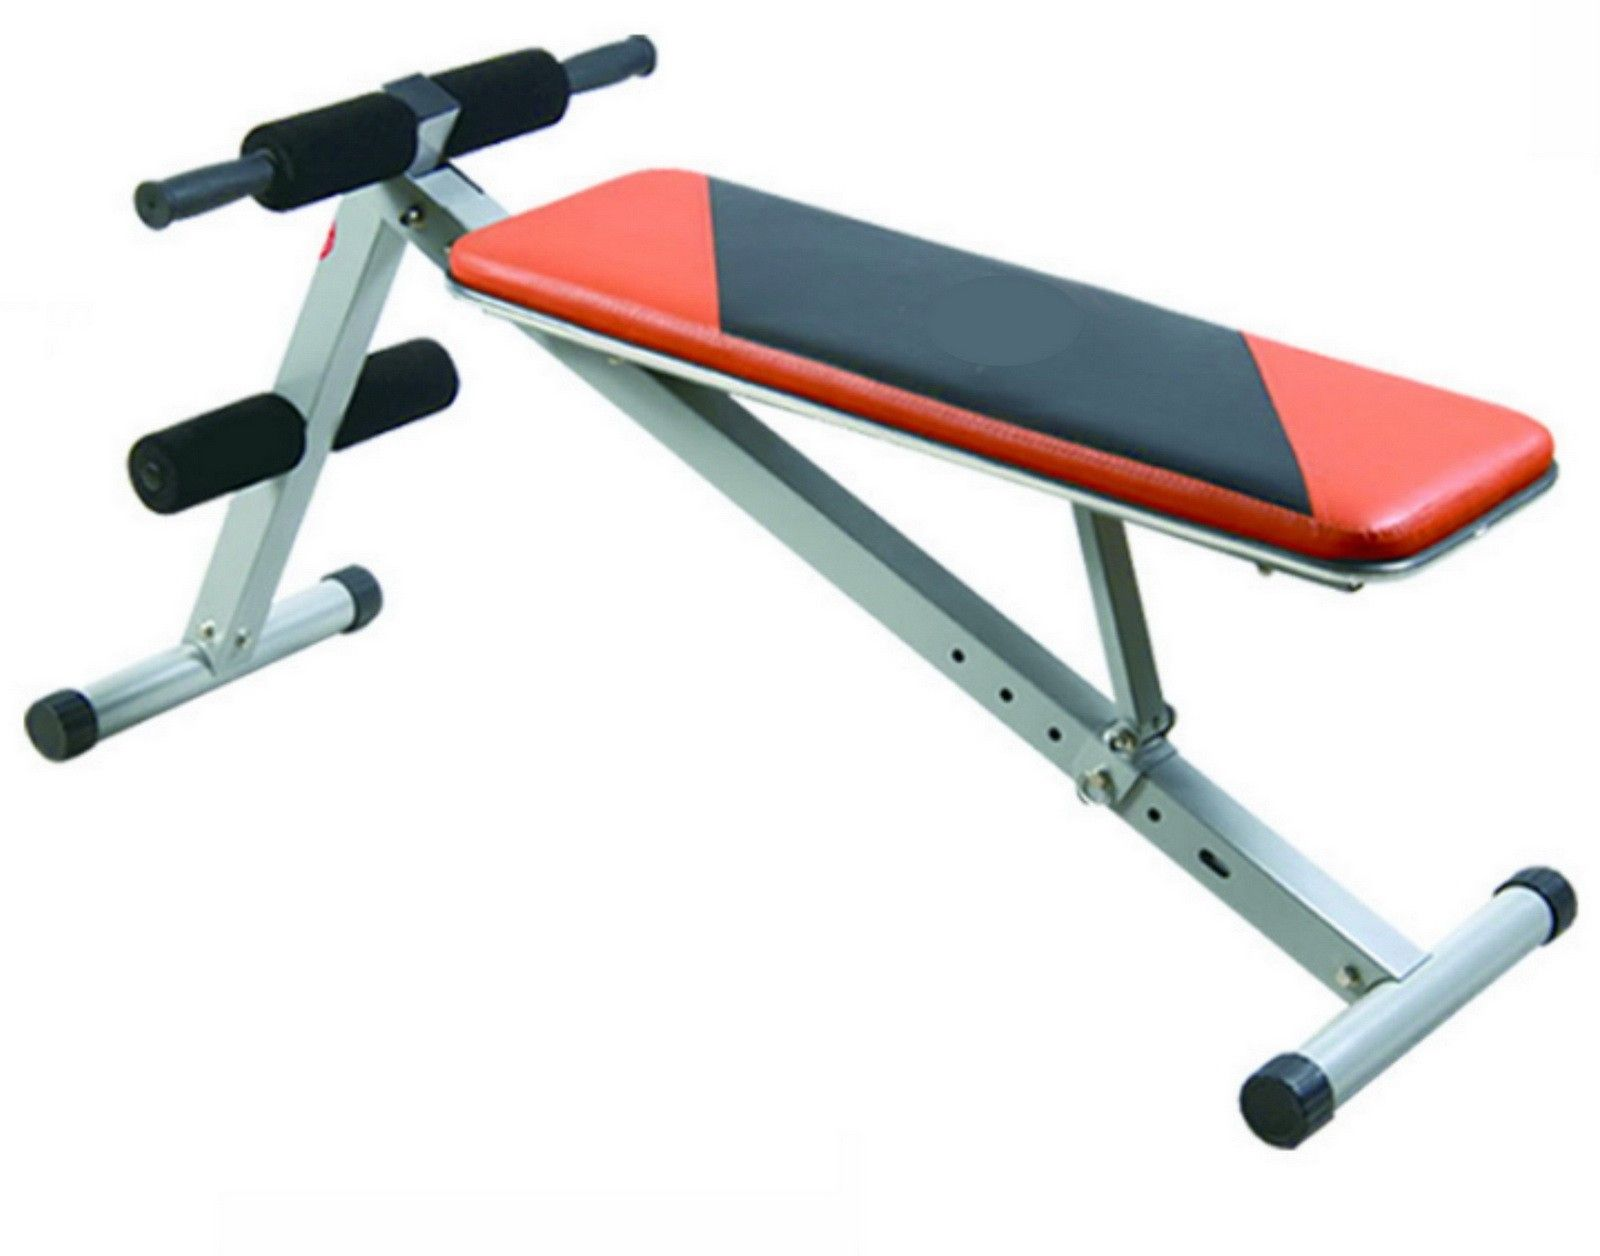 Model Number Sab 205 Name Sit Up Bench Exercise Bench Incline Bench Sit Up Equipment Sit Up Exercises S Incline Bench Bench Workout Exercise Benches